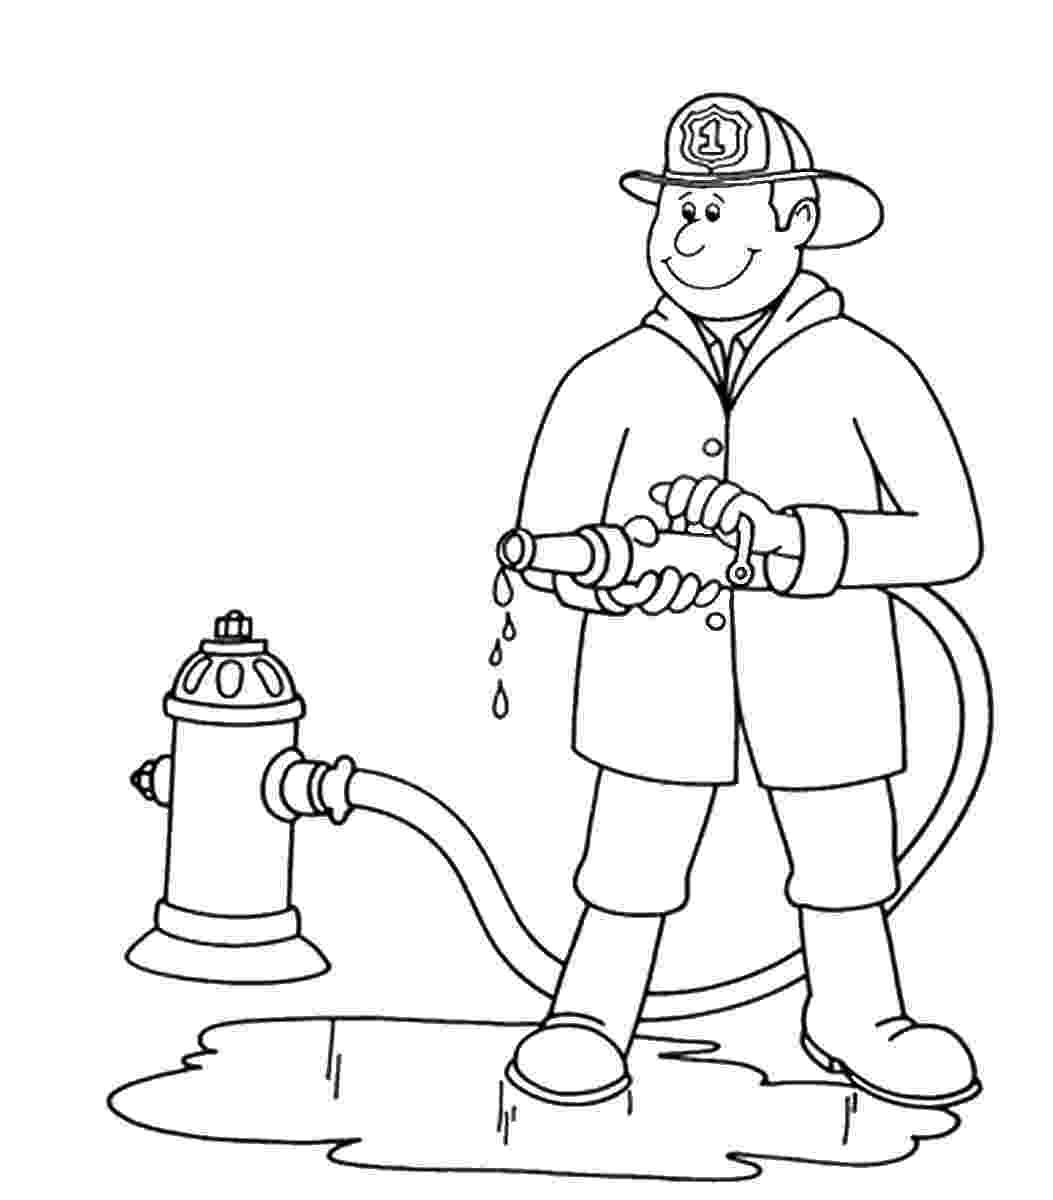 fire fighting coloring pages coloring page firefighter at work printable images professions fire fighting coloring pages